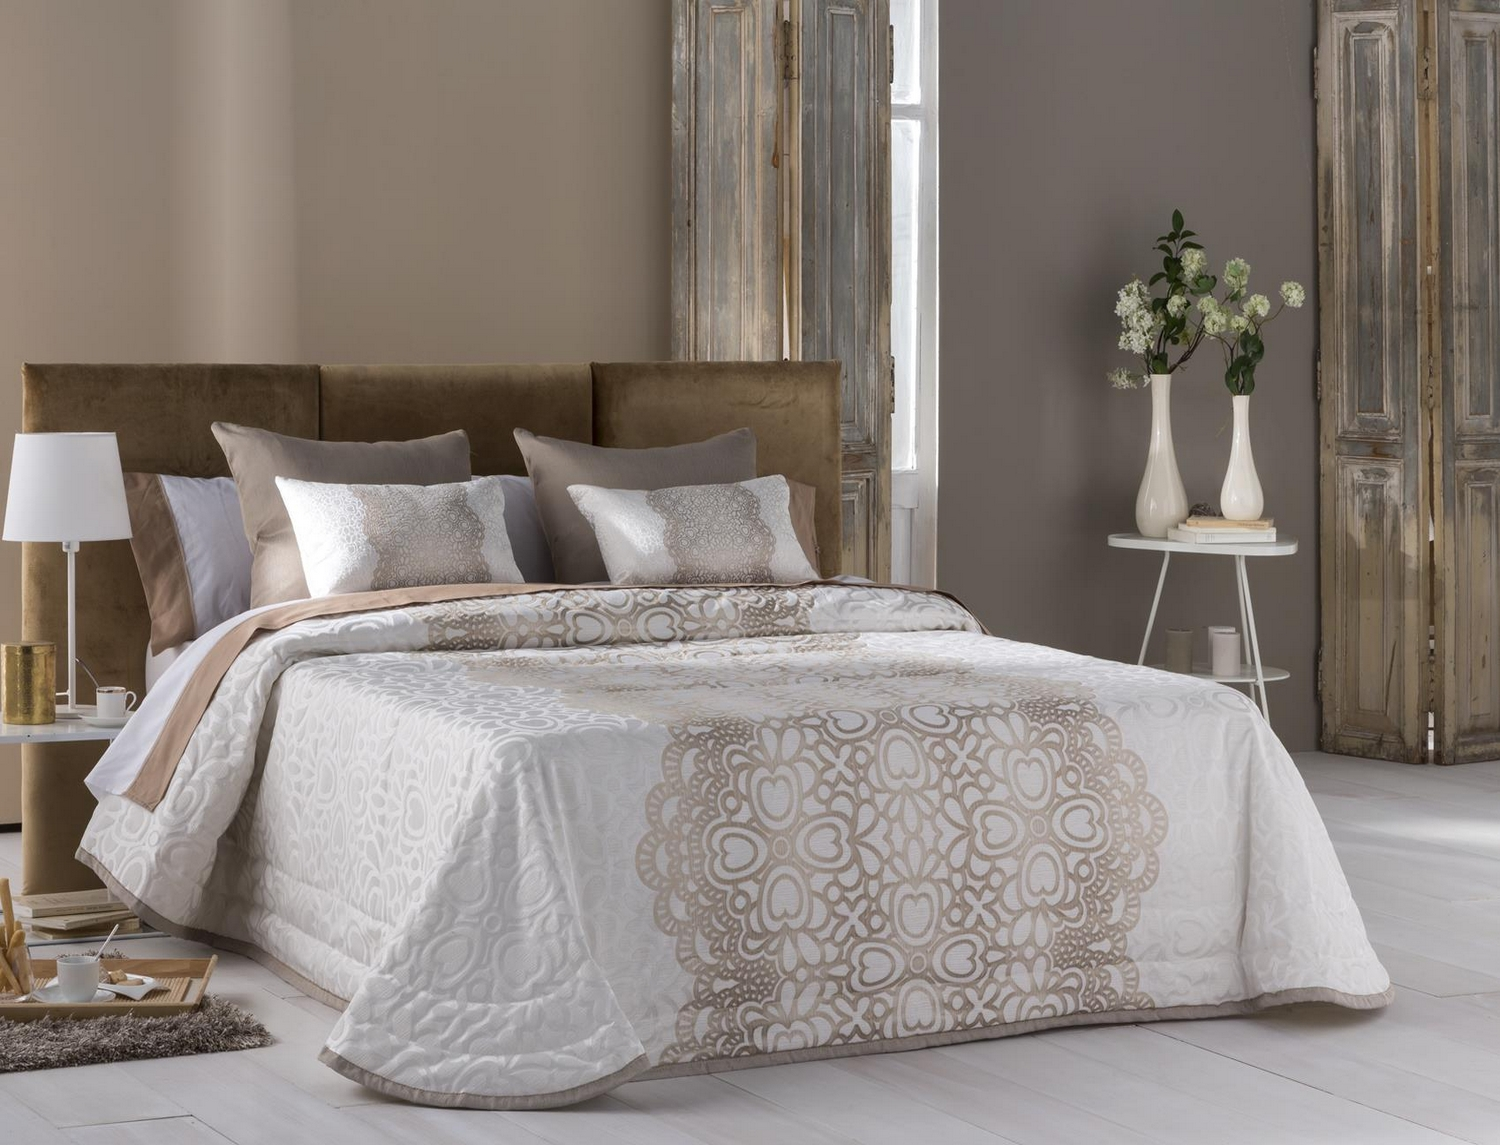 JVR Bouti Jacquard Chantilly